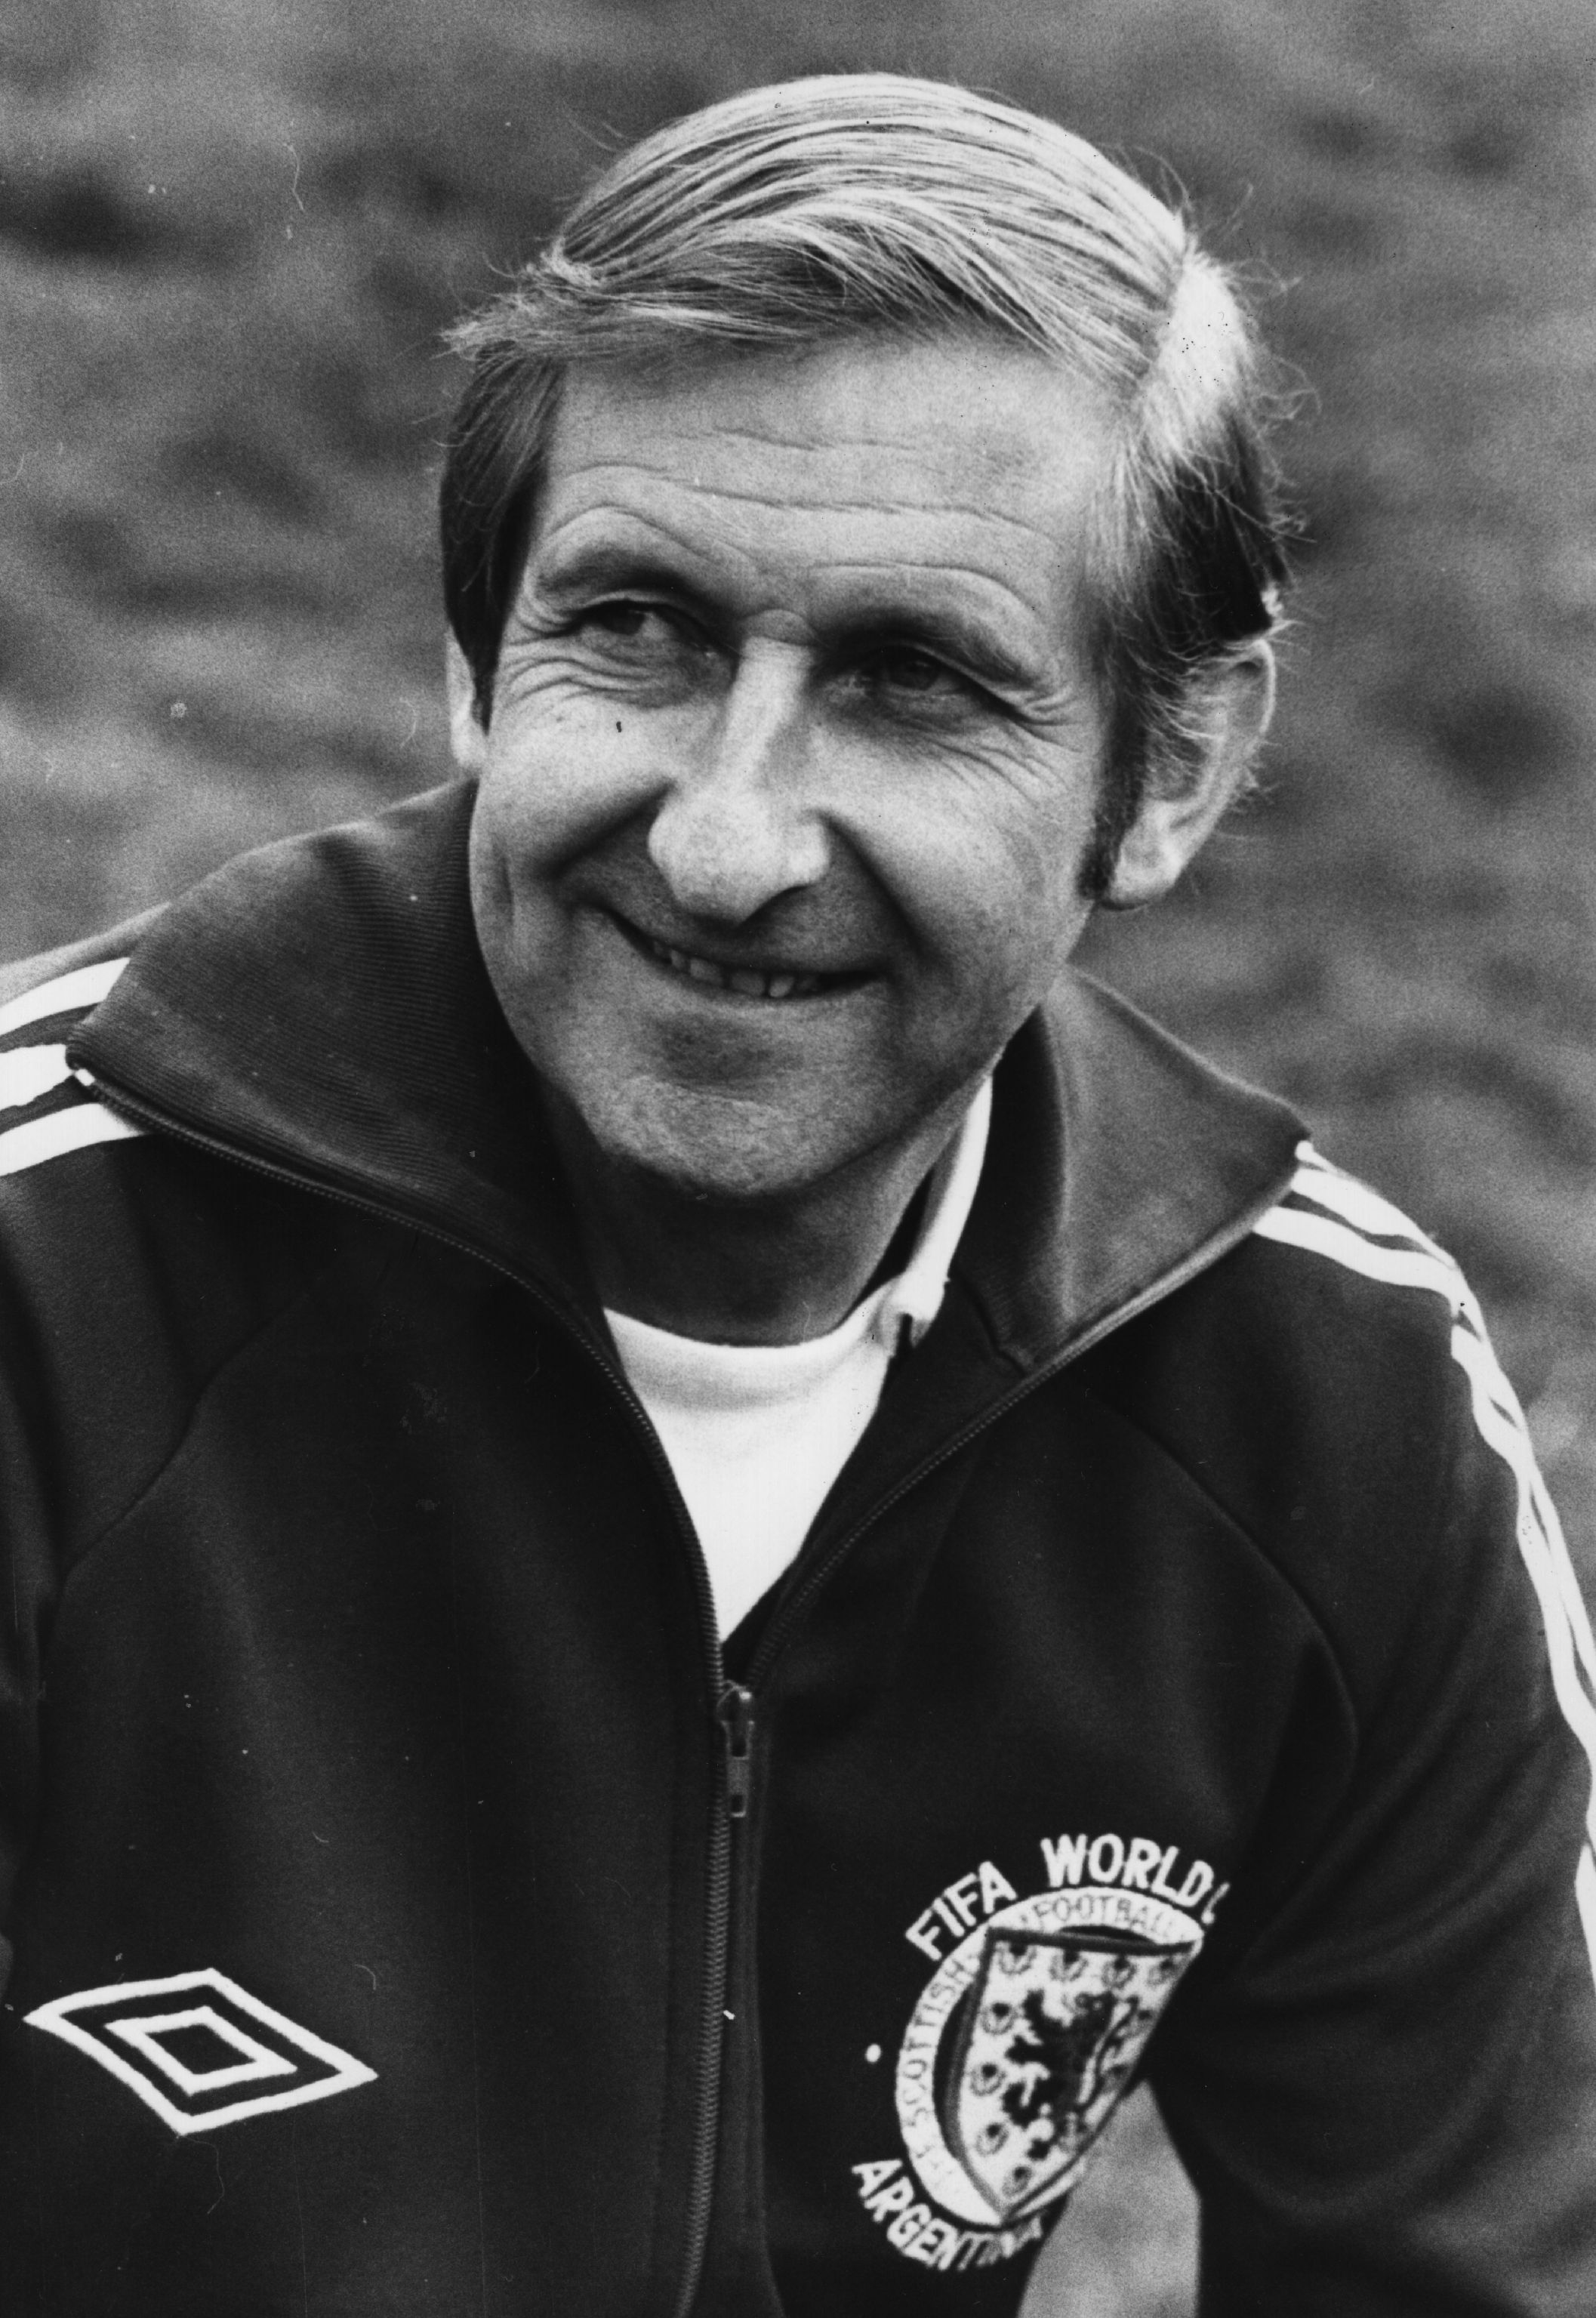 16th May 1978: Footballer Ally MacLeod of Motherwell and manager of the Scottish football team. MacLeod resigned from the national side after Scotland's disappointing performance in the 1978 World Cup in Argentina. Despite having a highly rated team, including Kenny Dalglish and Archie Gemmill, Scotland lost to Peru and Iran and finished bottom of their group but played well against Holland in their last game and won 3 - 2. (Photo by Evening Standard/Getty Images)